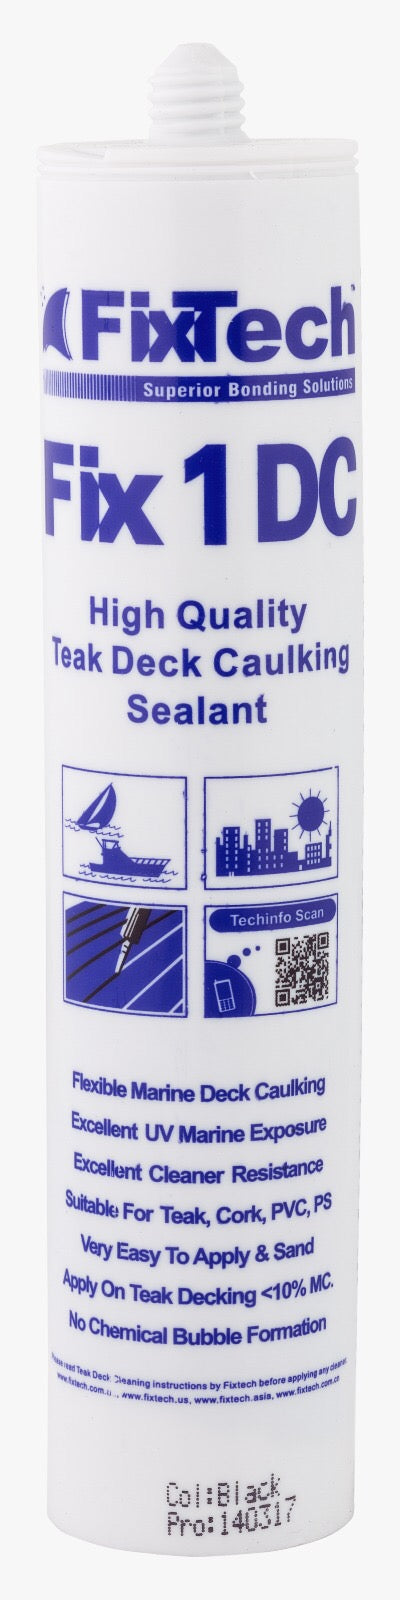 Fix1DCBKL03 Teak Deck Caulking, Col: Black (300mL)-Singles